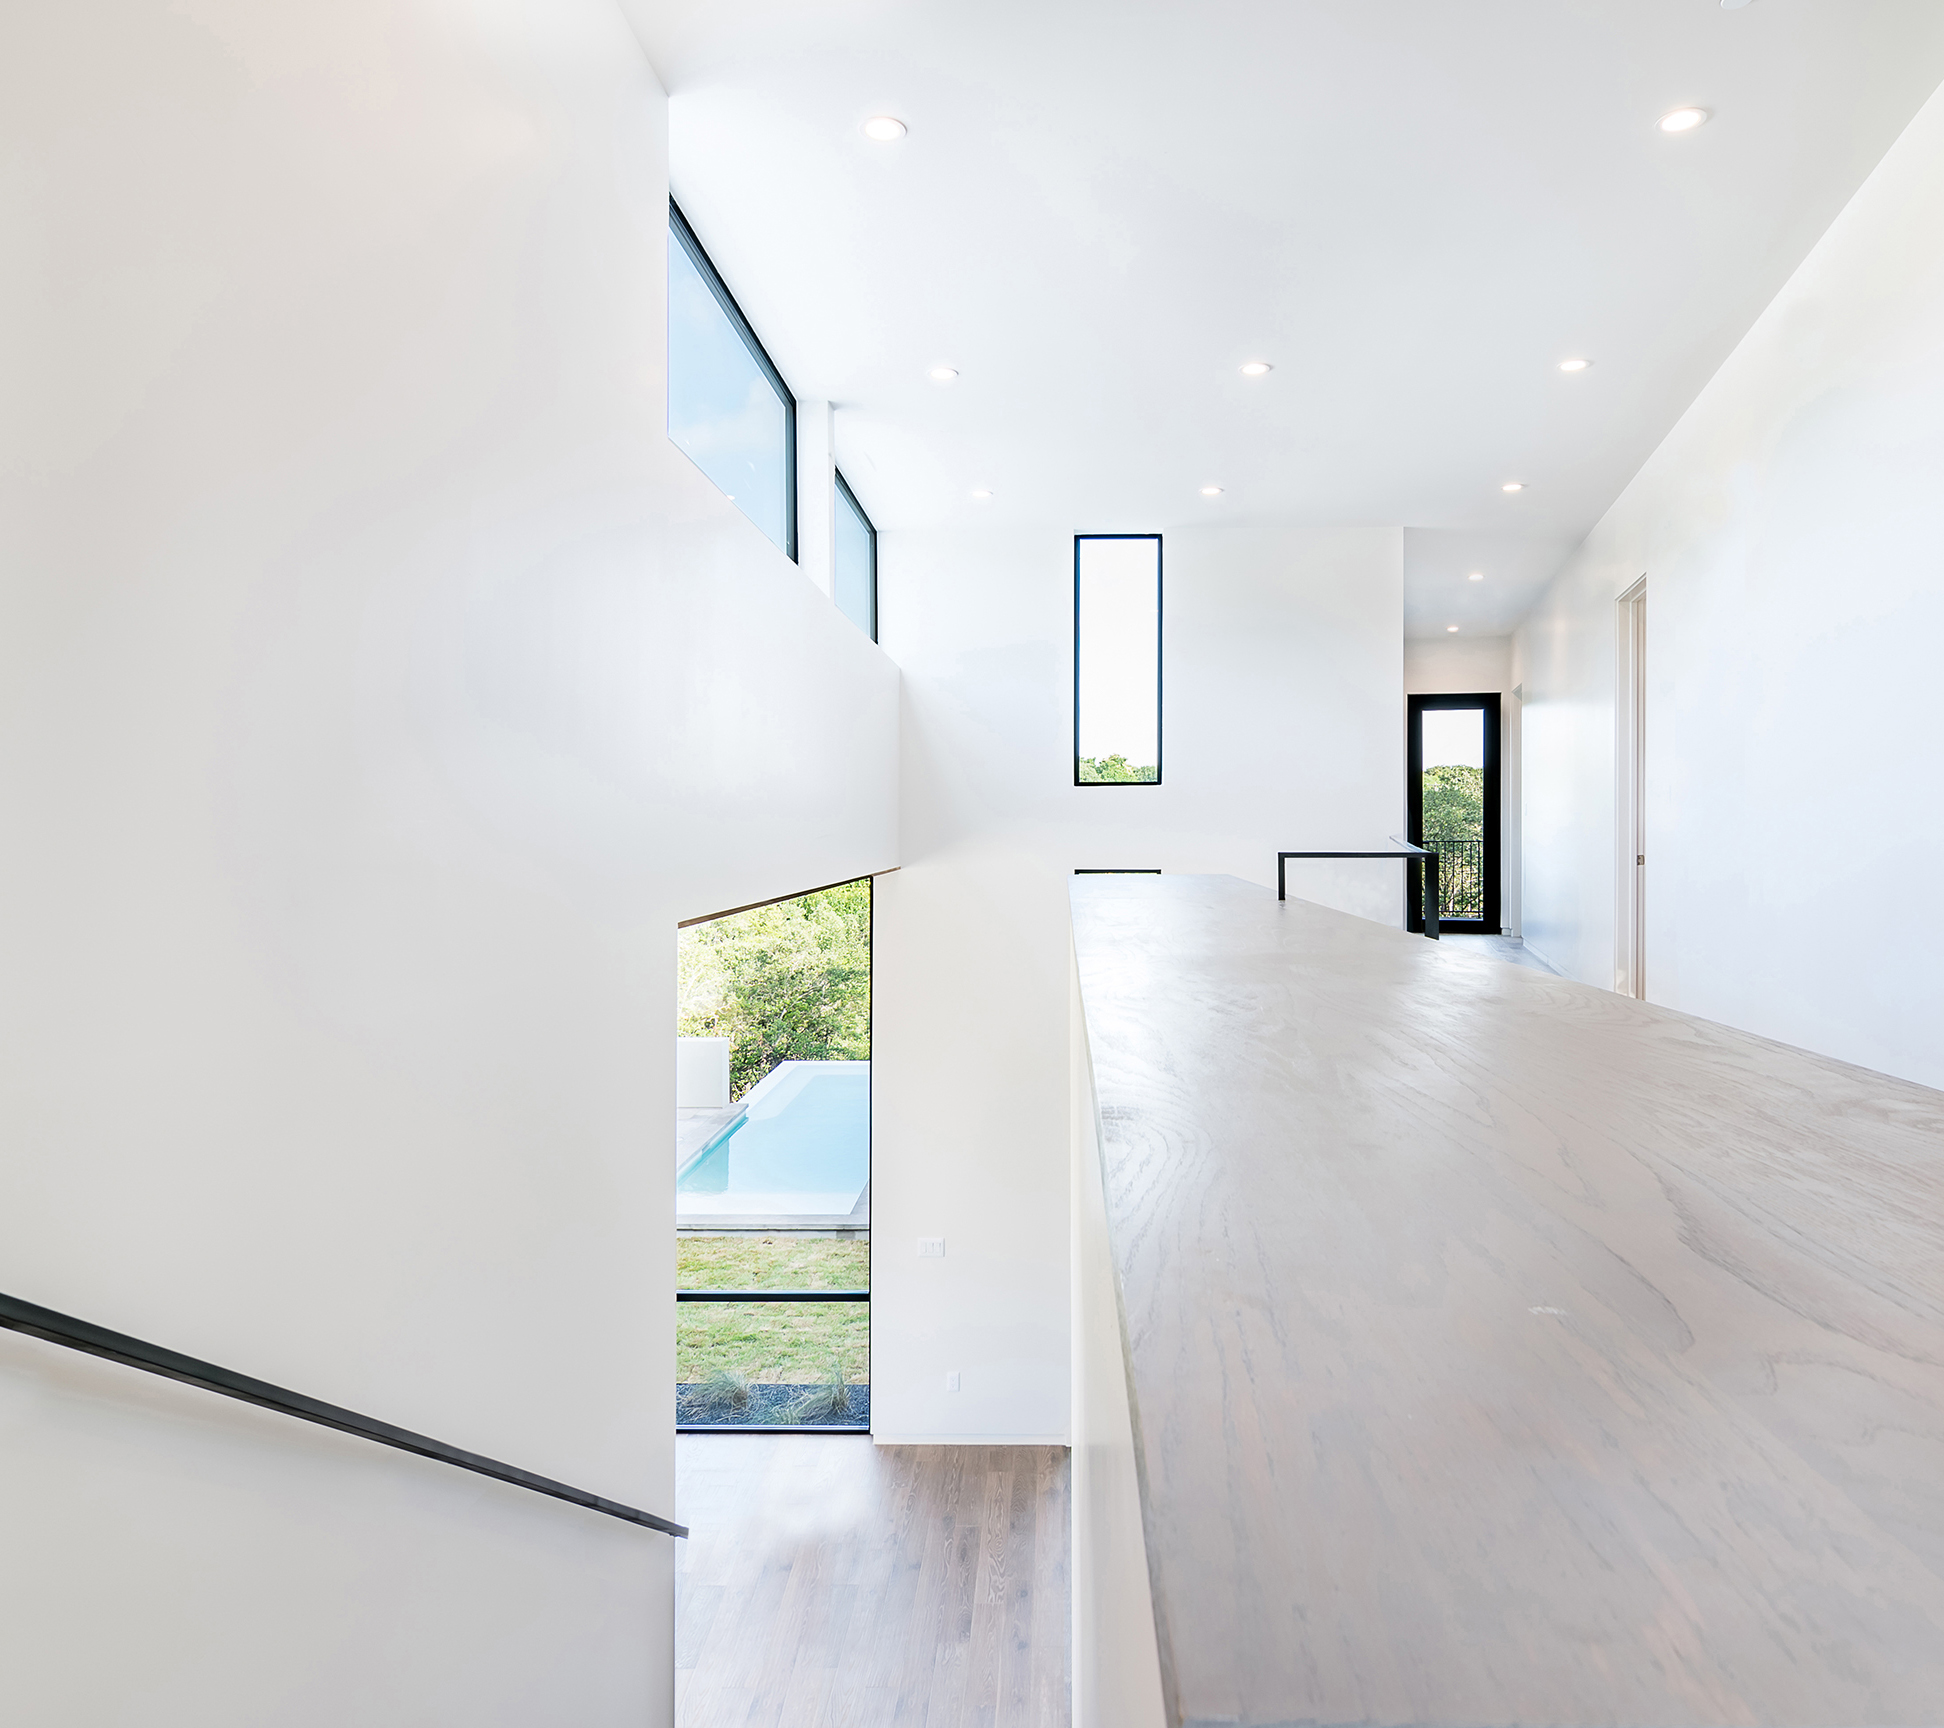 09 Matt Fajkus MF Architecture Bracketed Space House_Photo by Spaces and Faces Photography-edited.jpg